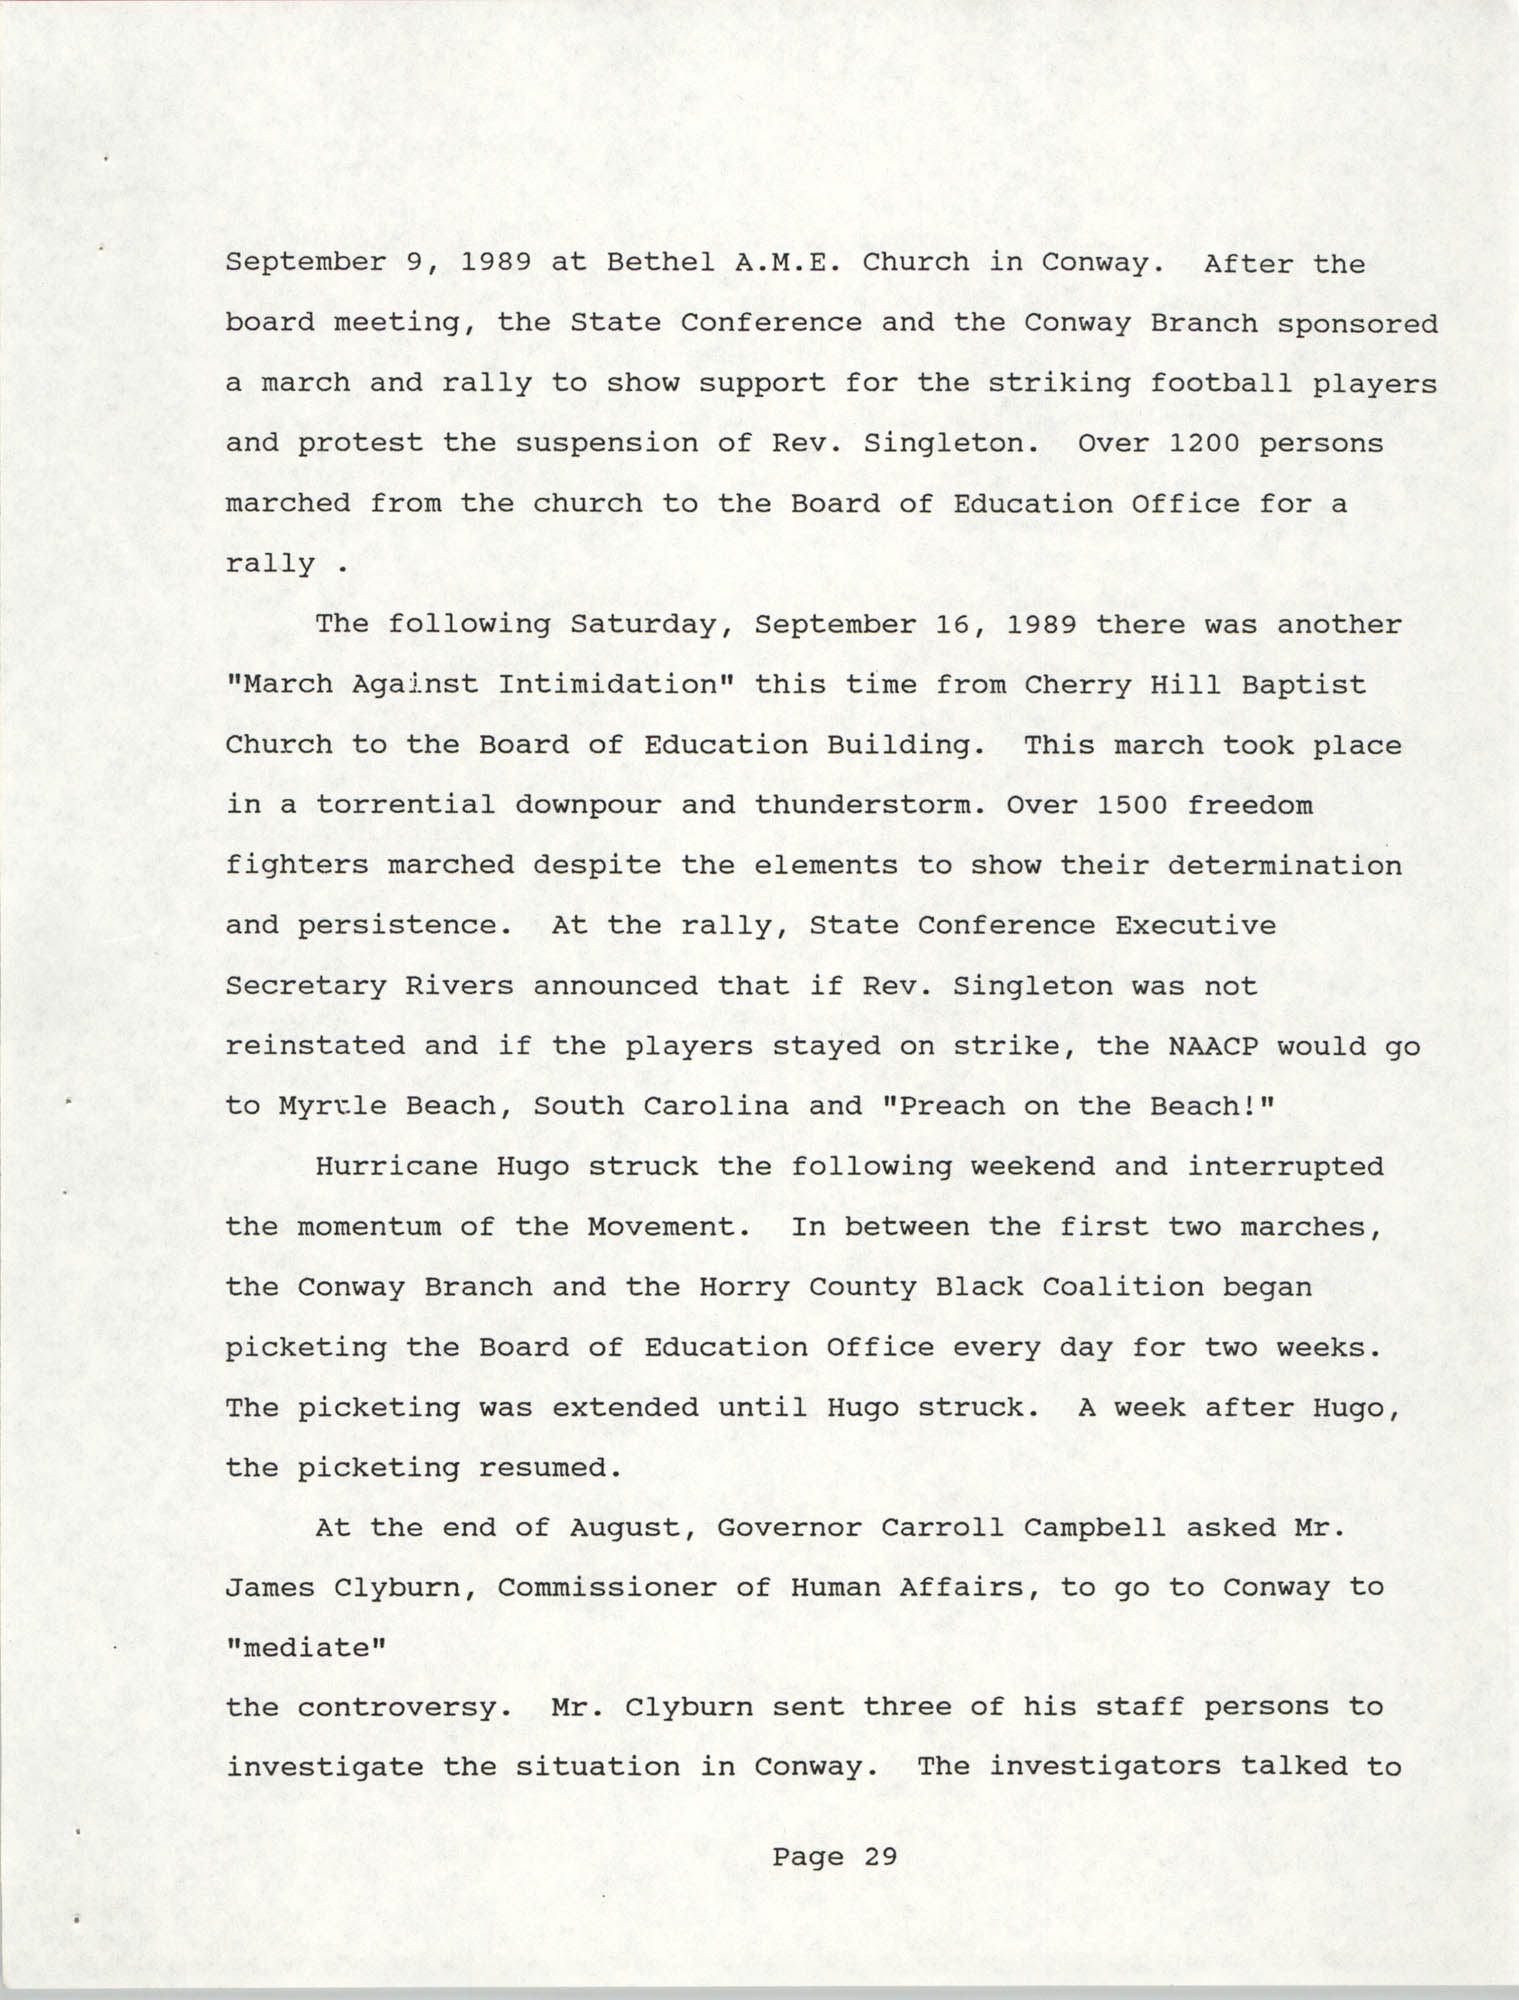 South Carolina Conference of Branches of the NAACP, 1990 Annual Report, Part Two, Page 29